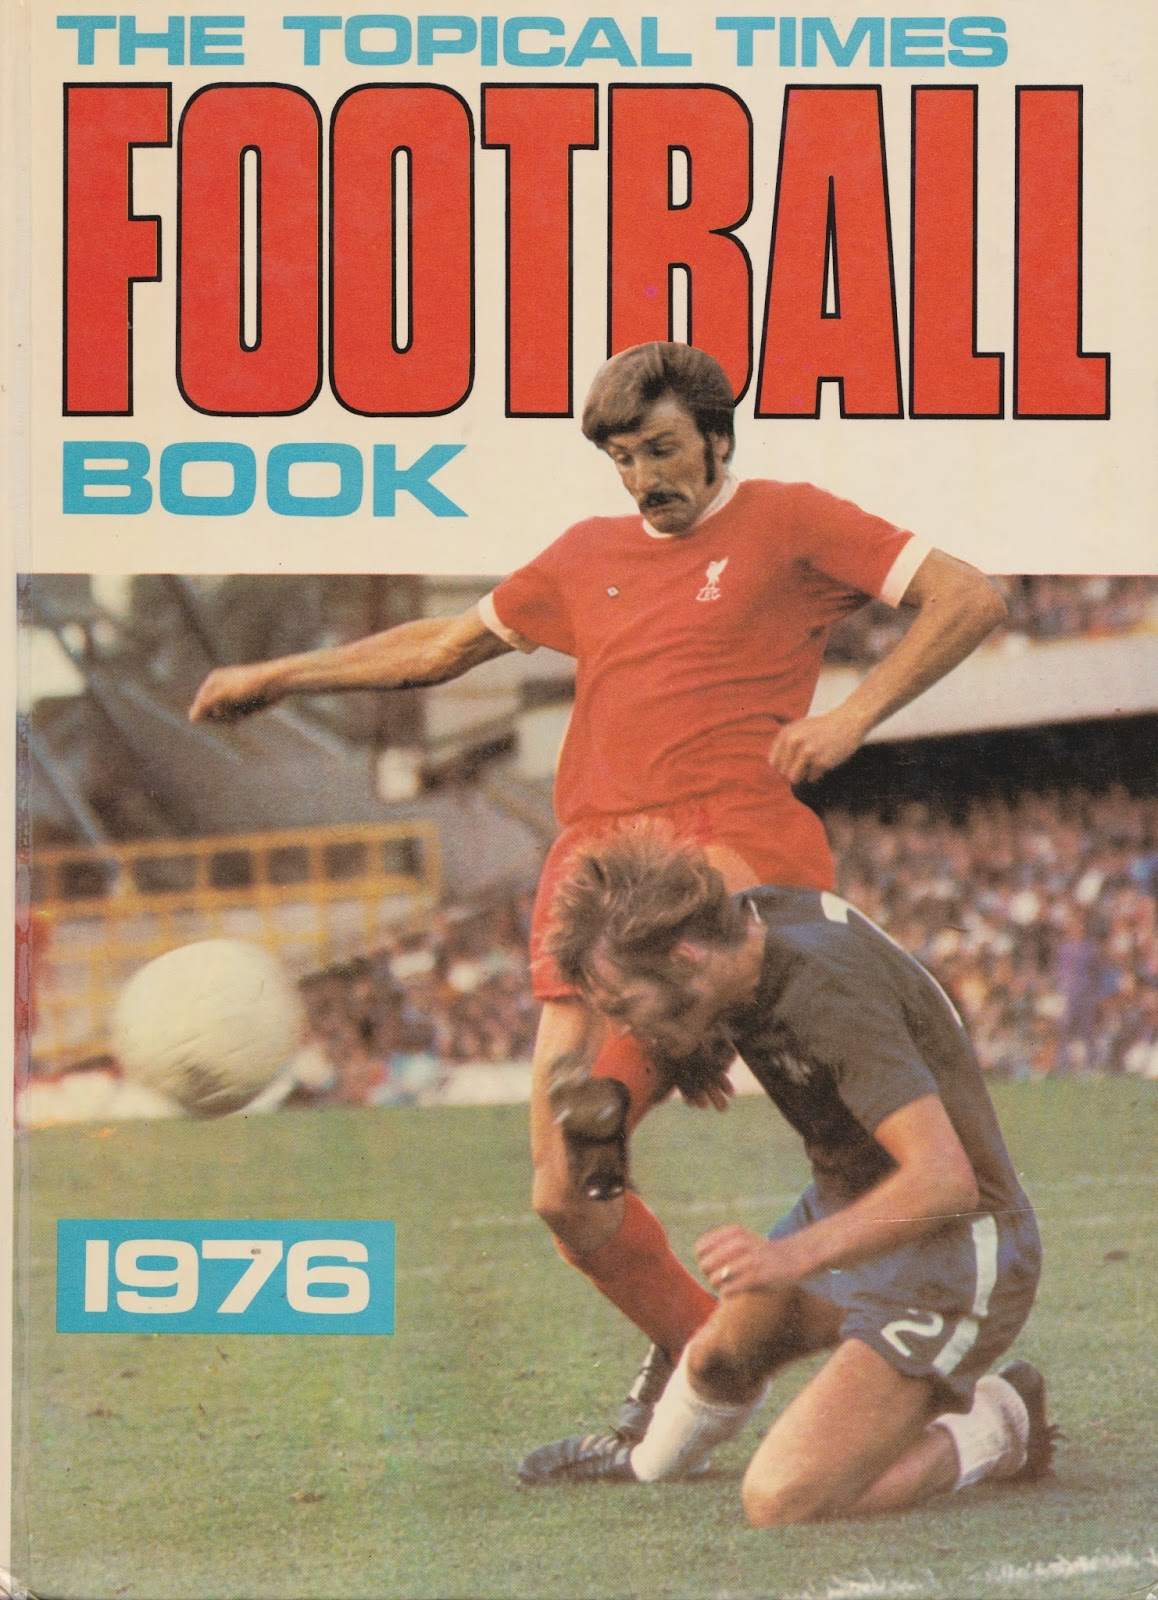 The Topical Times Football Book 1976 - Tommy Smith